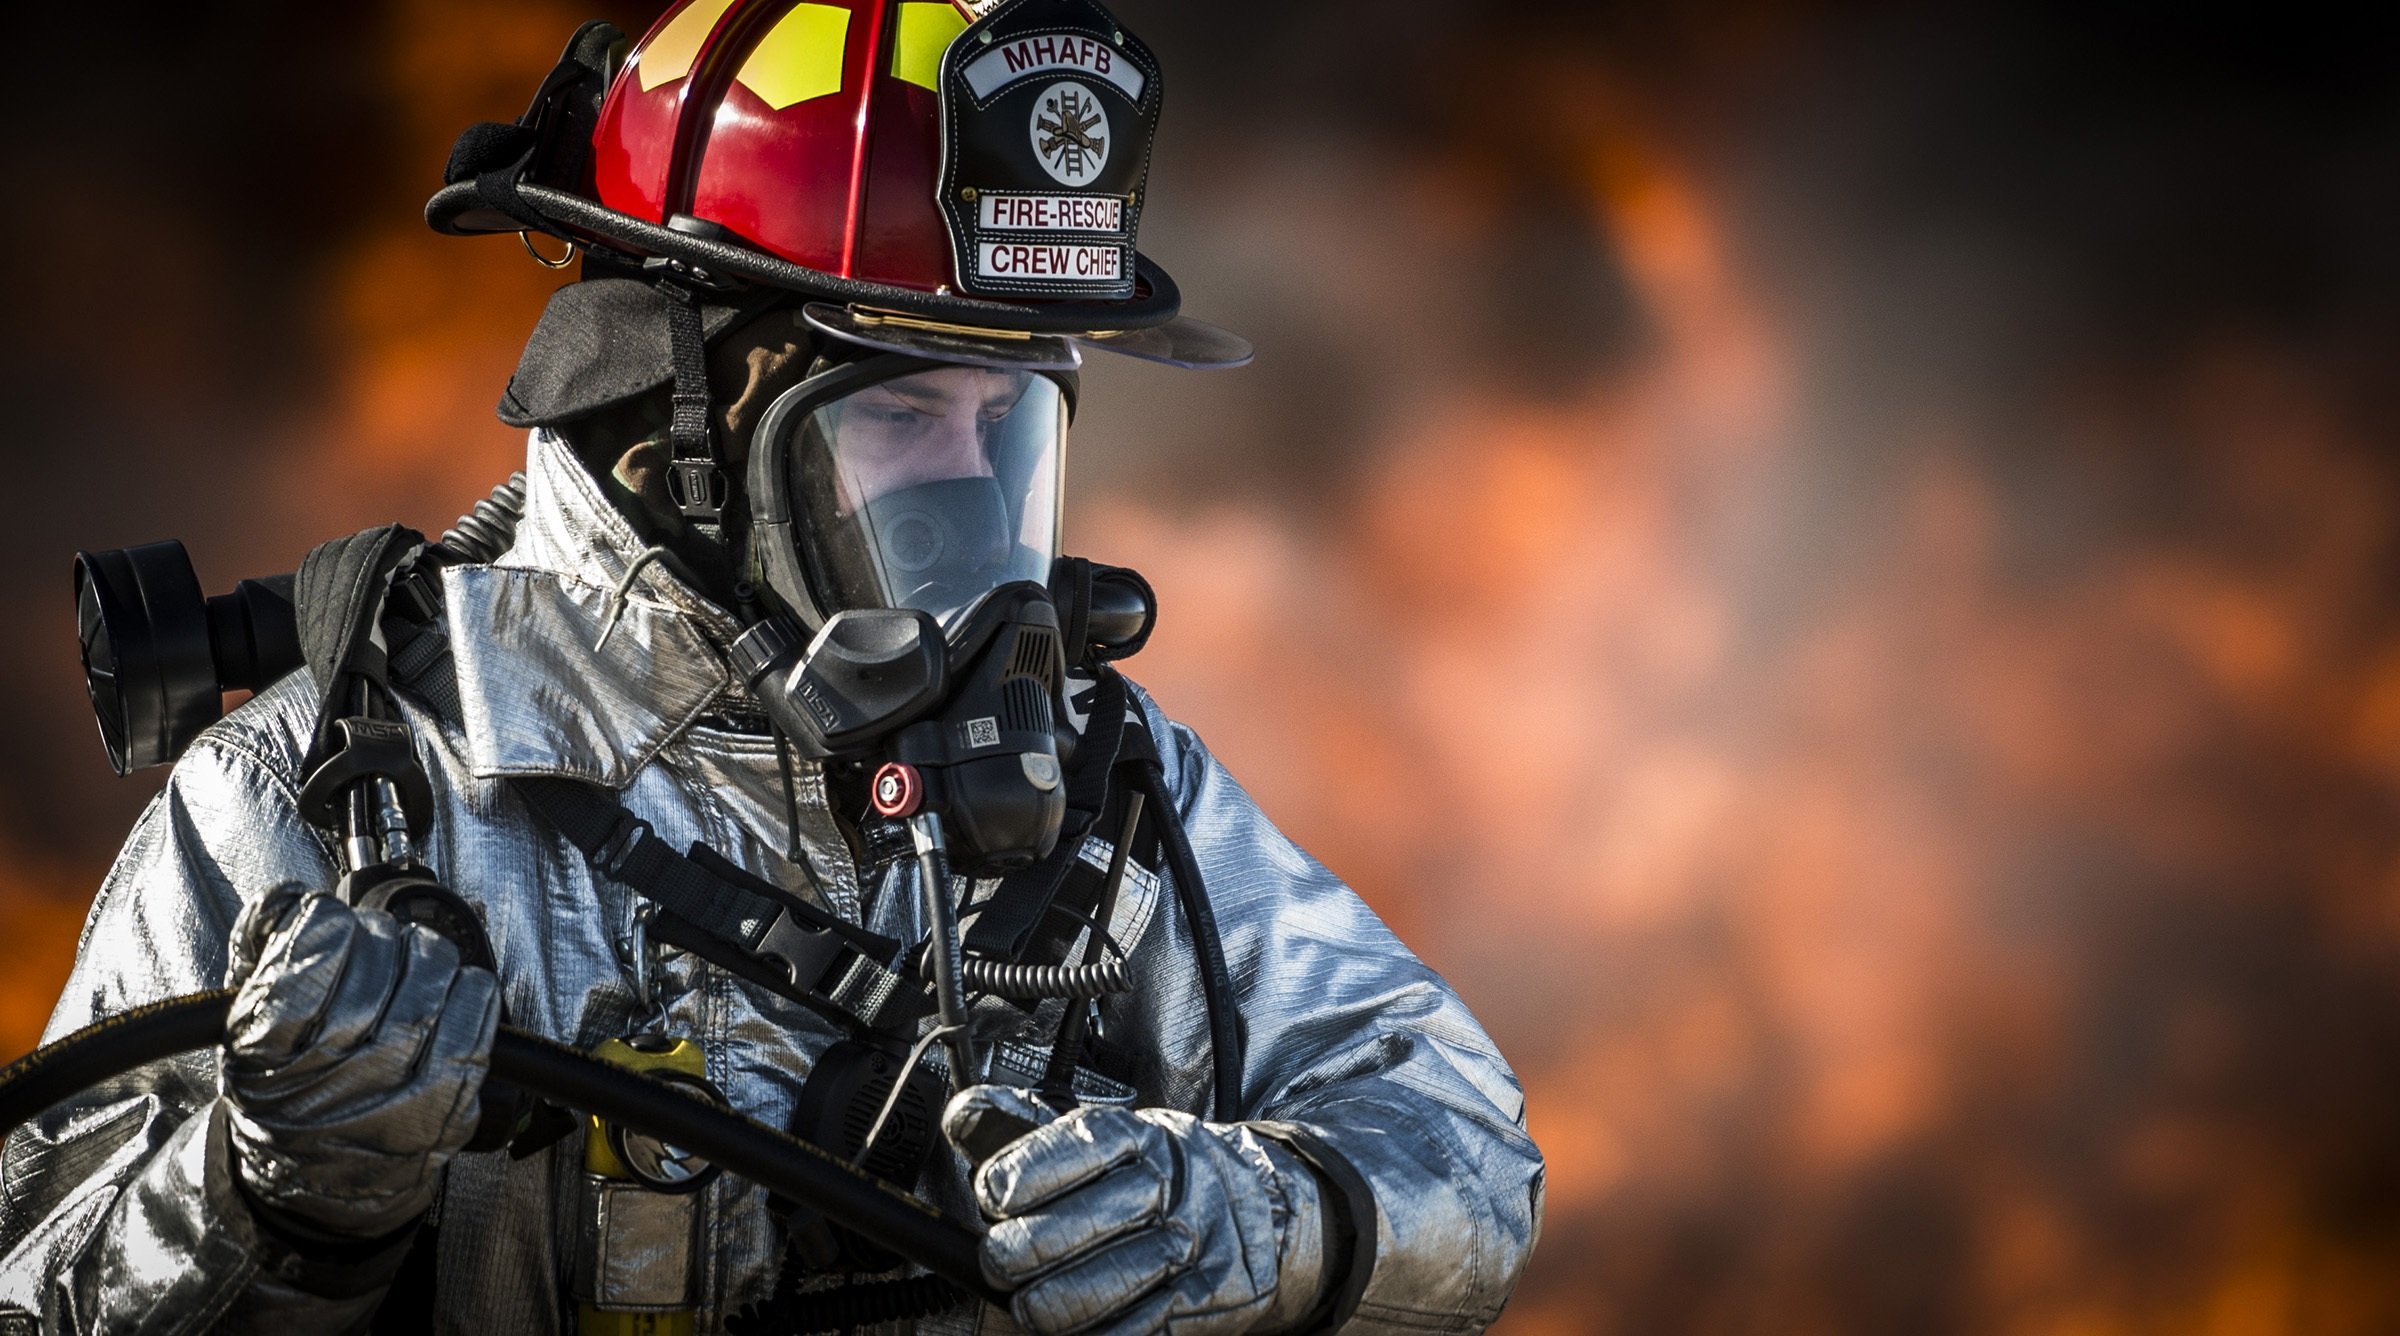 Firefighter with full personal protection gear standing in front of a fire